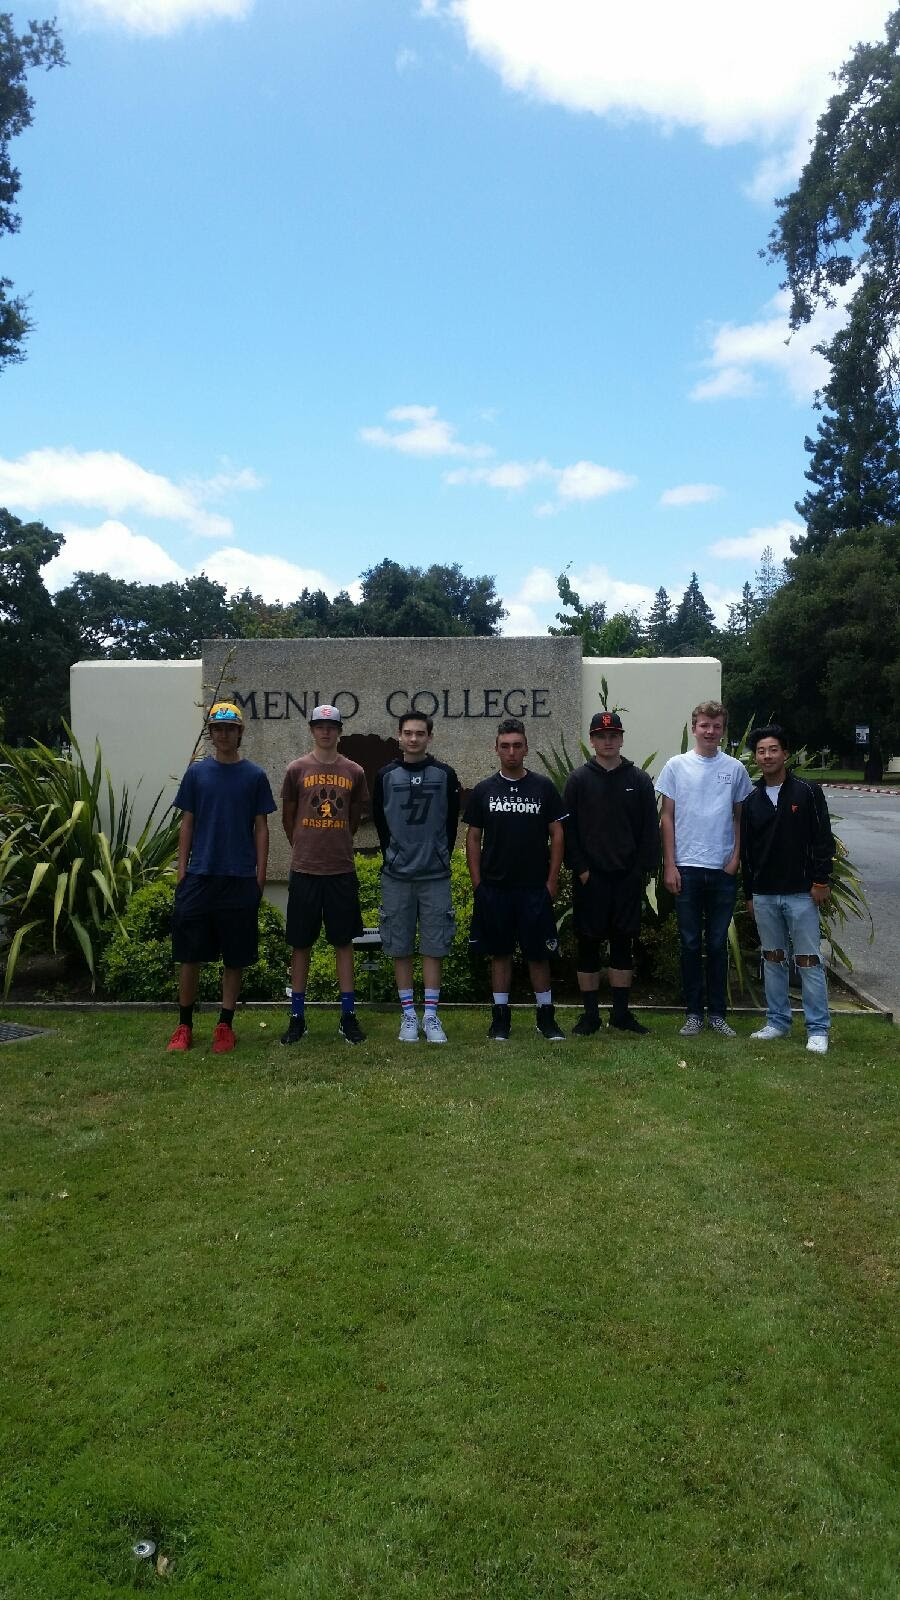 Baseball Camp @ Menlo College, Summer 2017